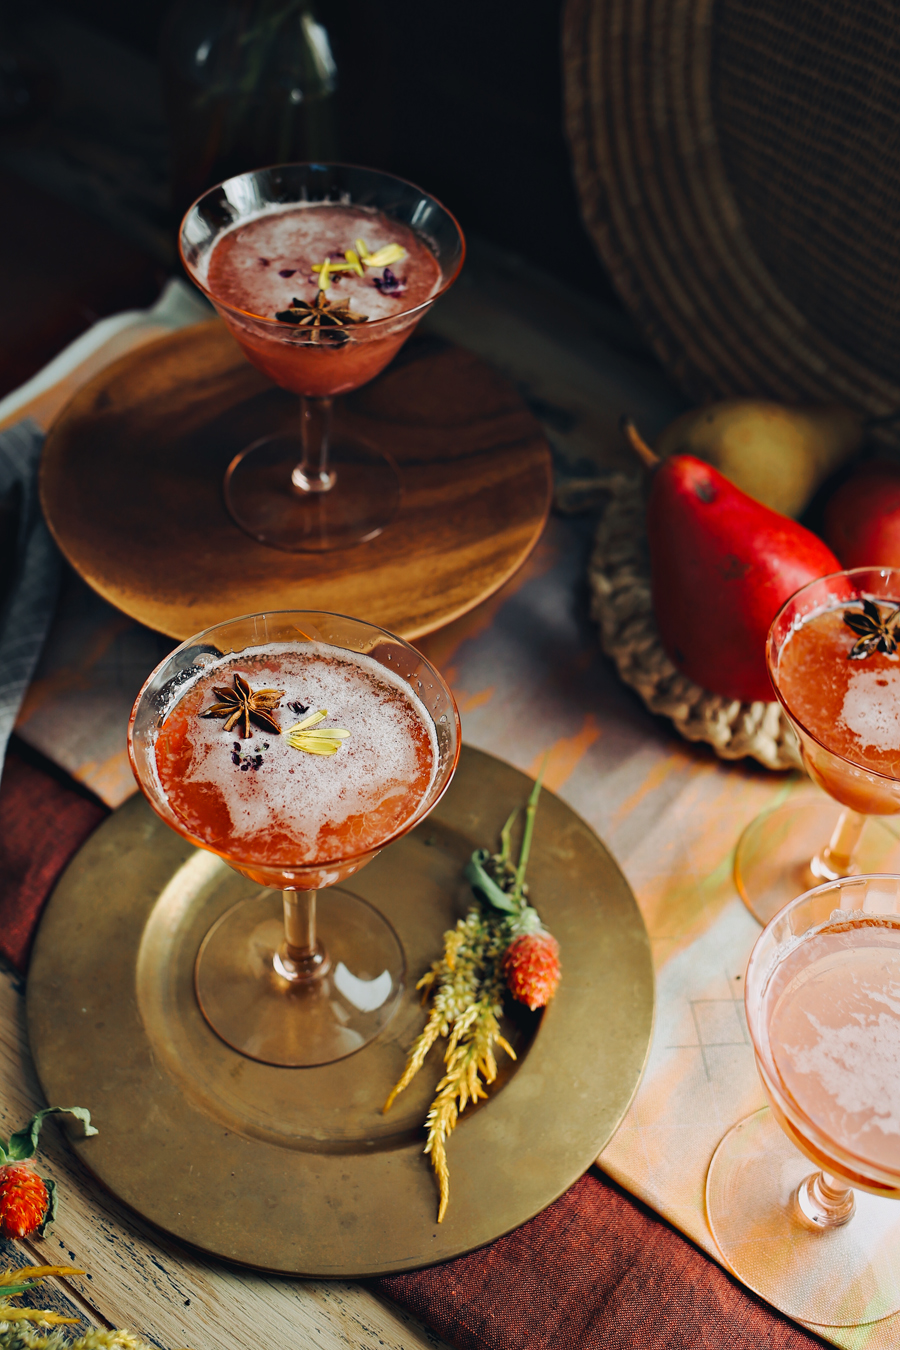 03_Wine-Poached-Pear-Prosecco-Cocktail-Dine-X-Design.jpg